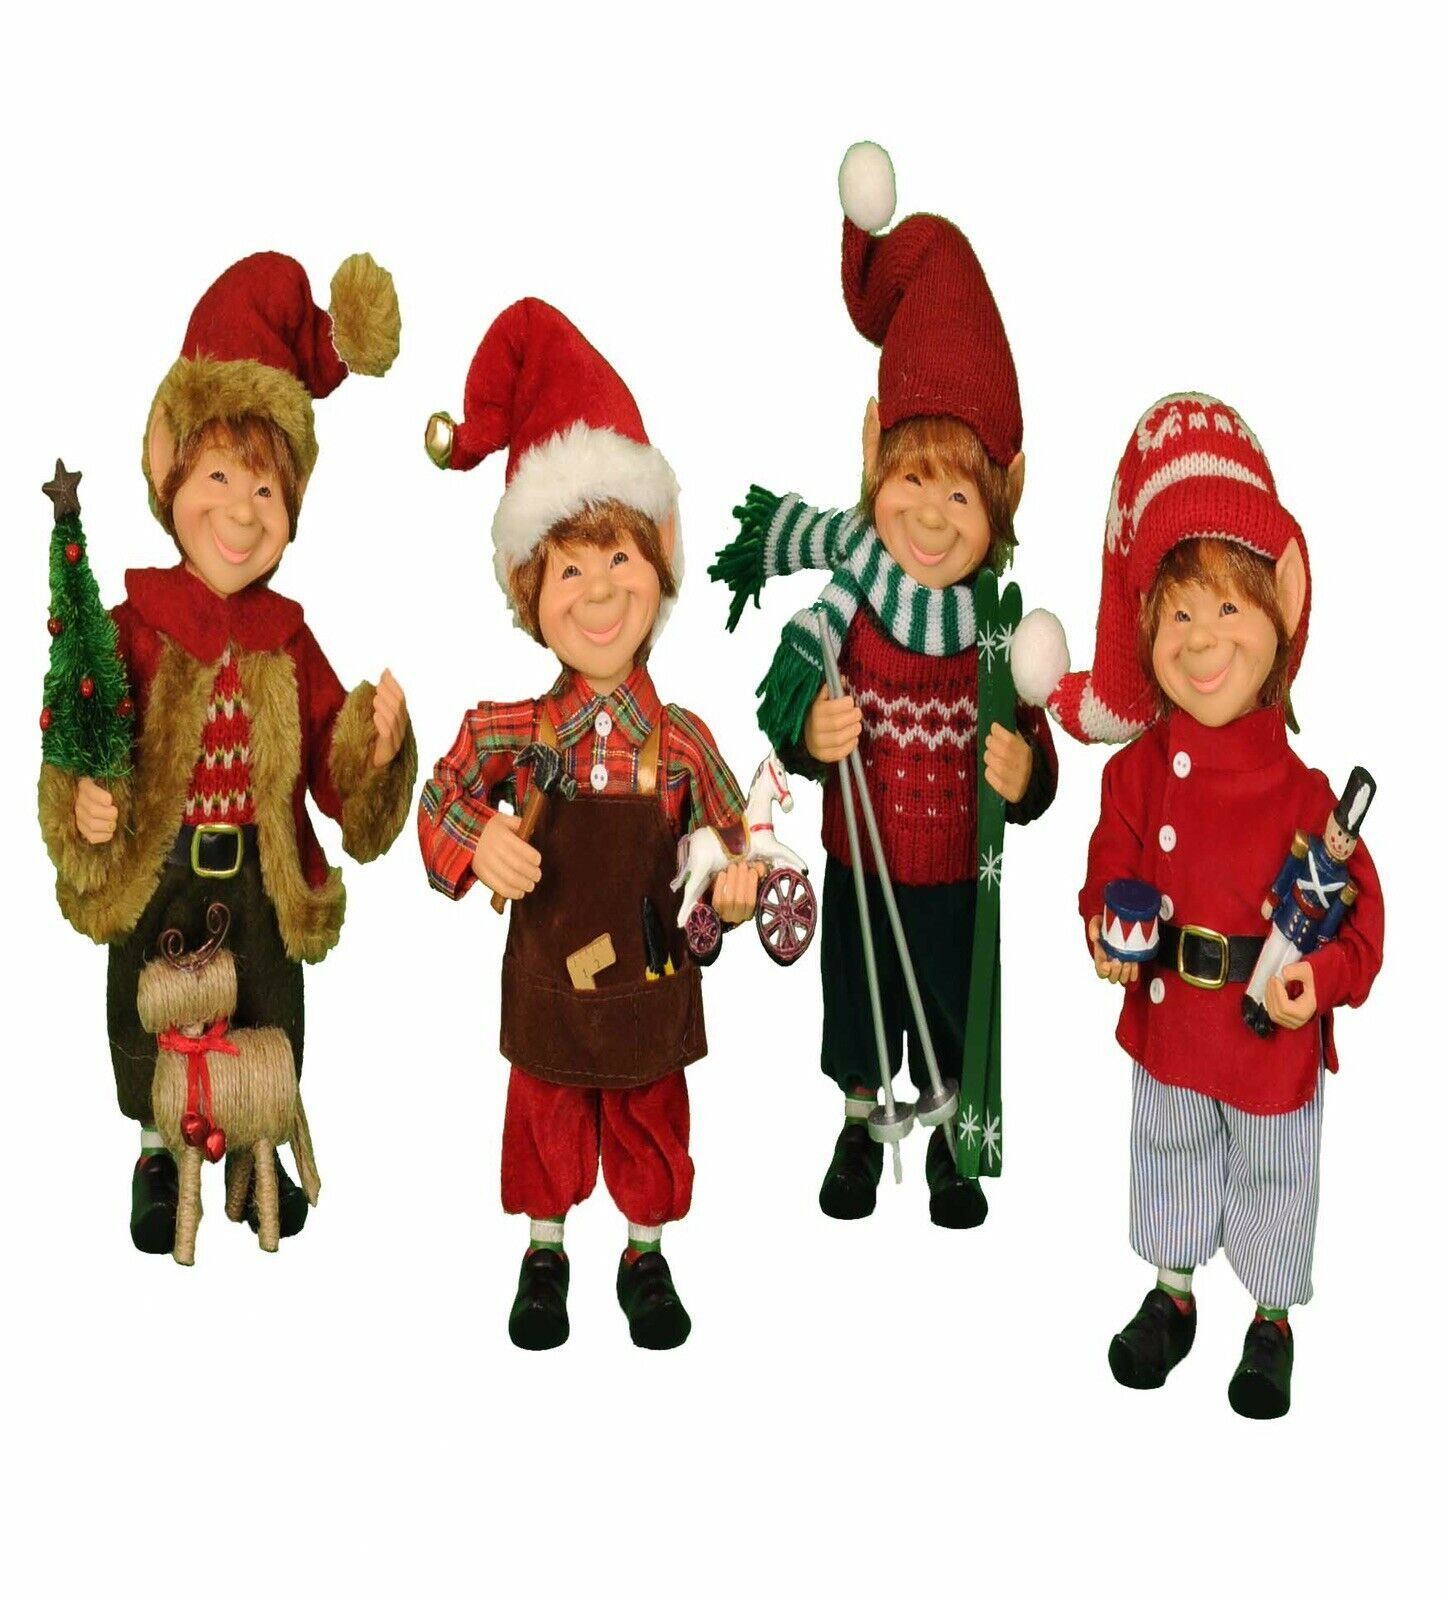 Primary image for Karen Didion Elf Santa helpers set of 4 elves cc09-10